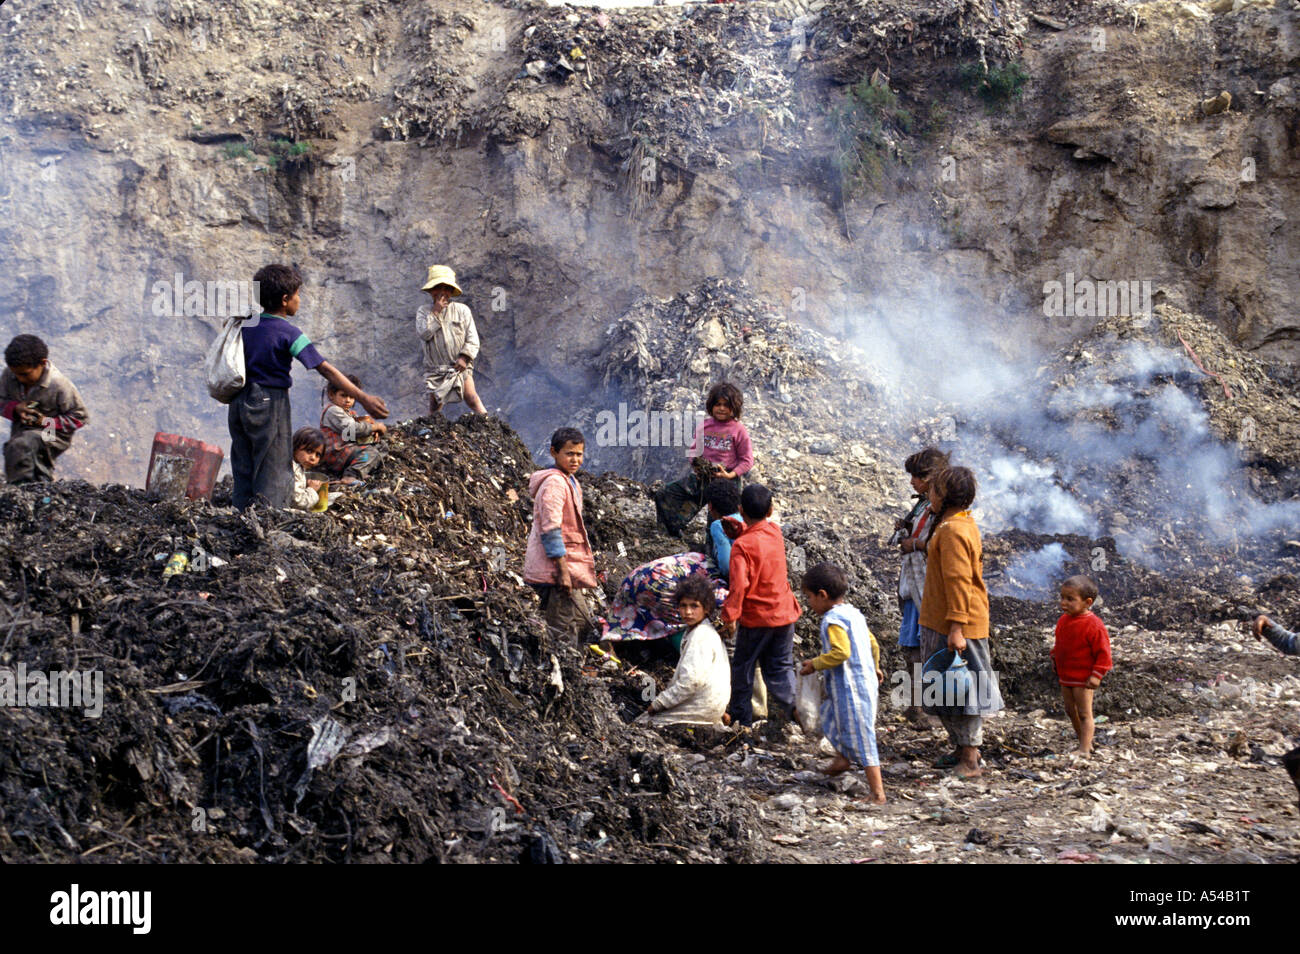 Painet hn1800 3952 egypt children playing om garbage dump mokattam district coptic zebellin collectors cairo country - Stock Image